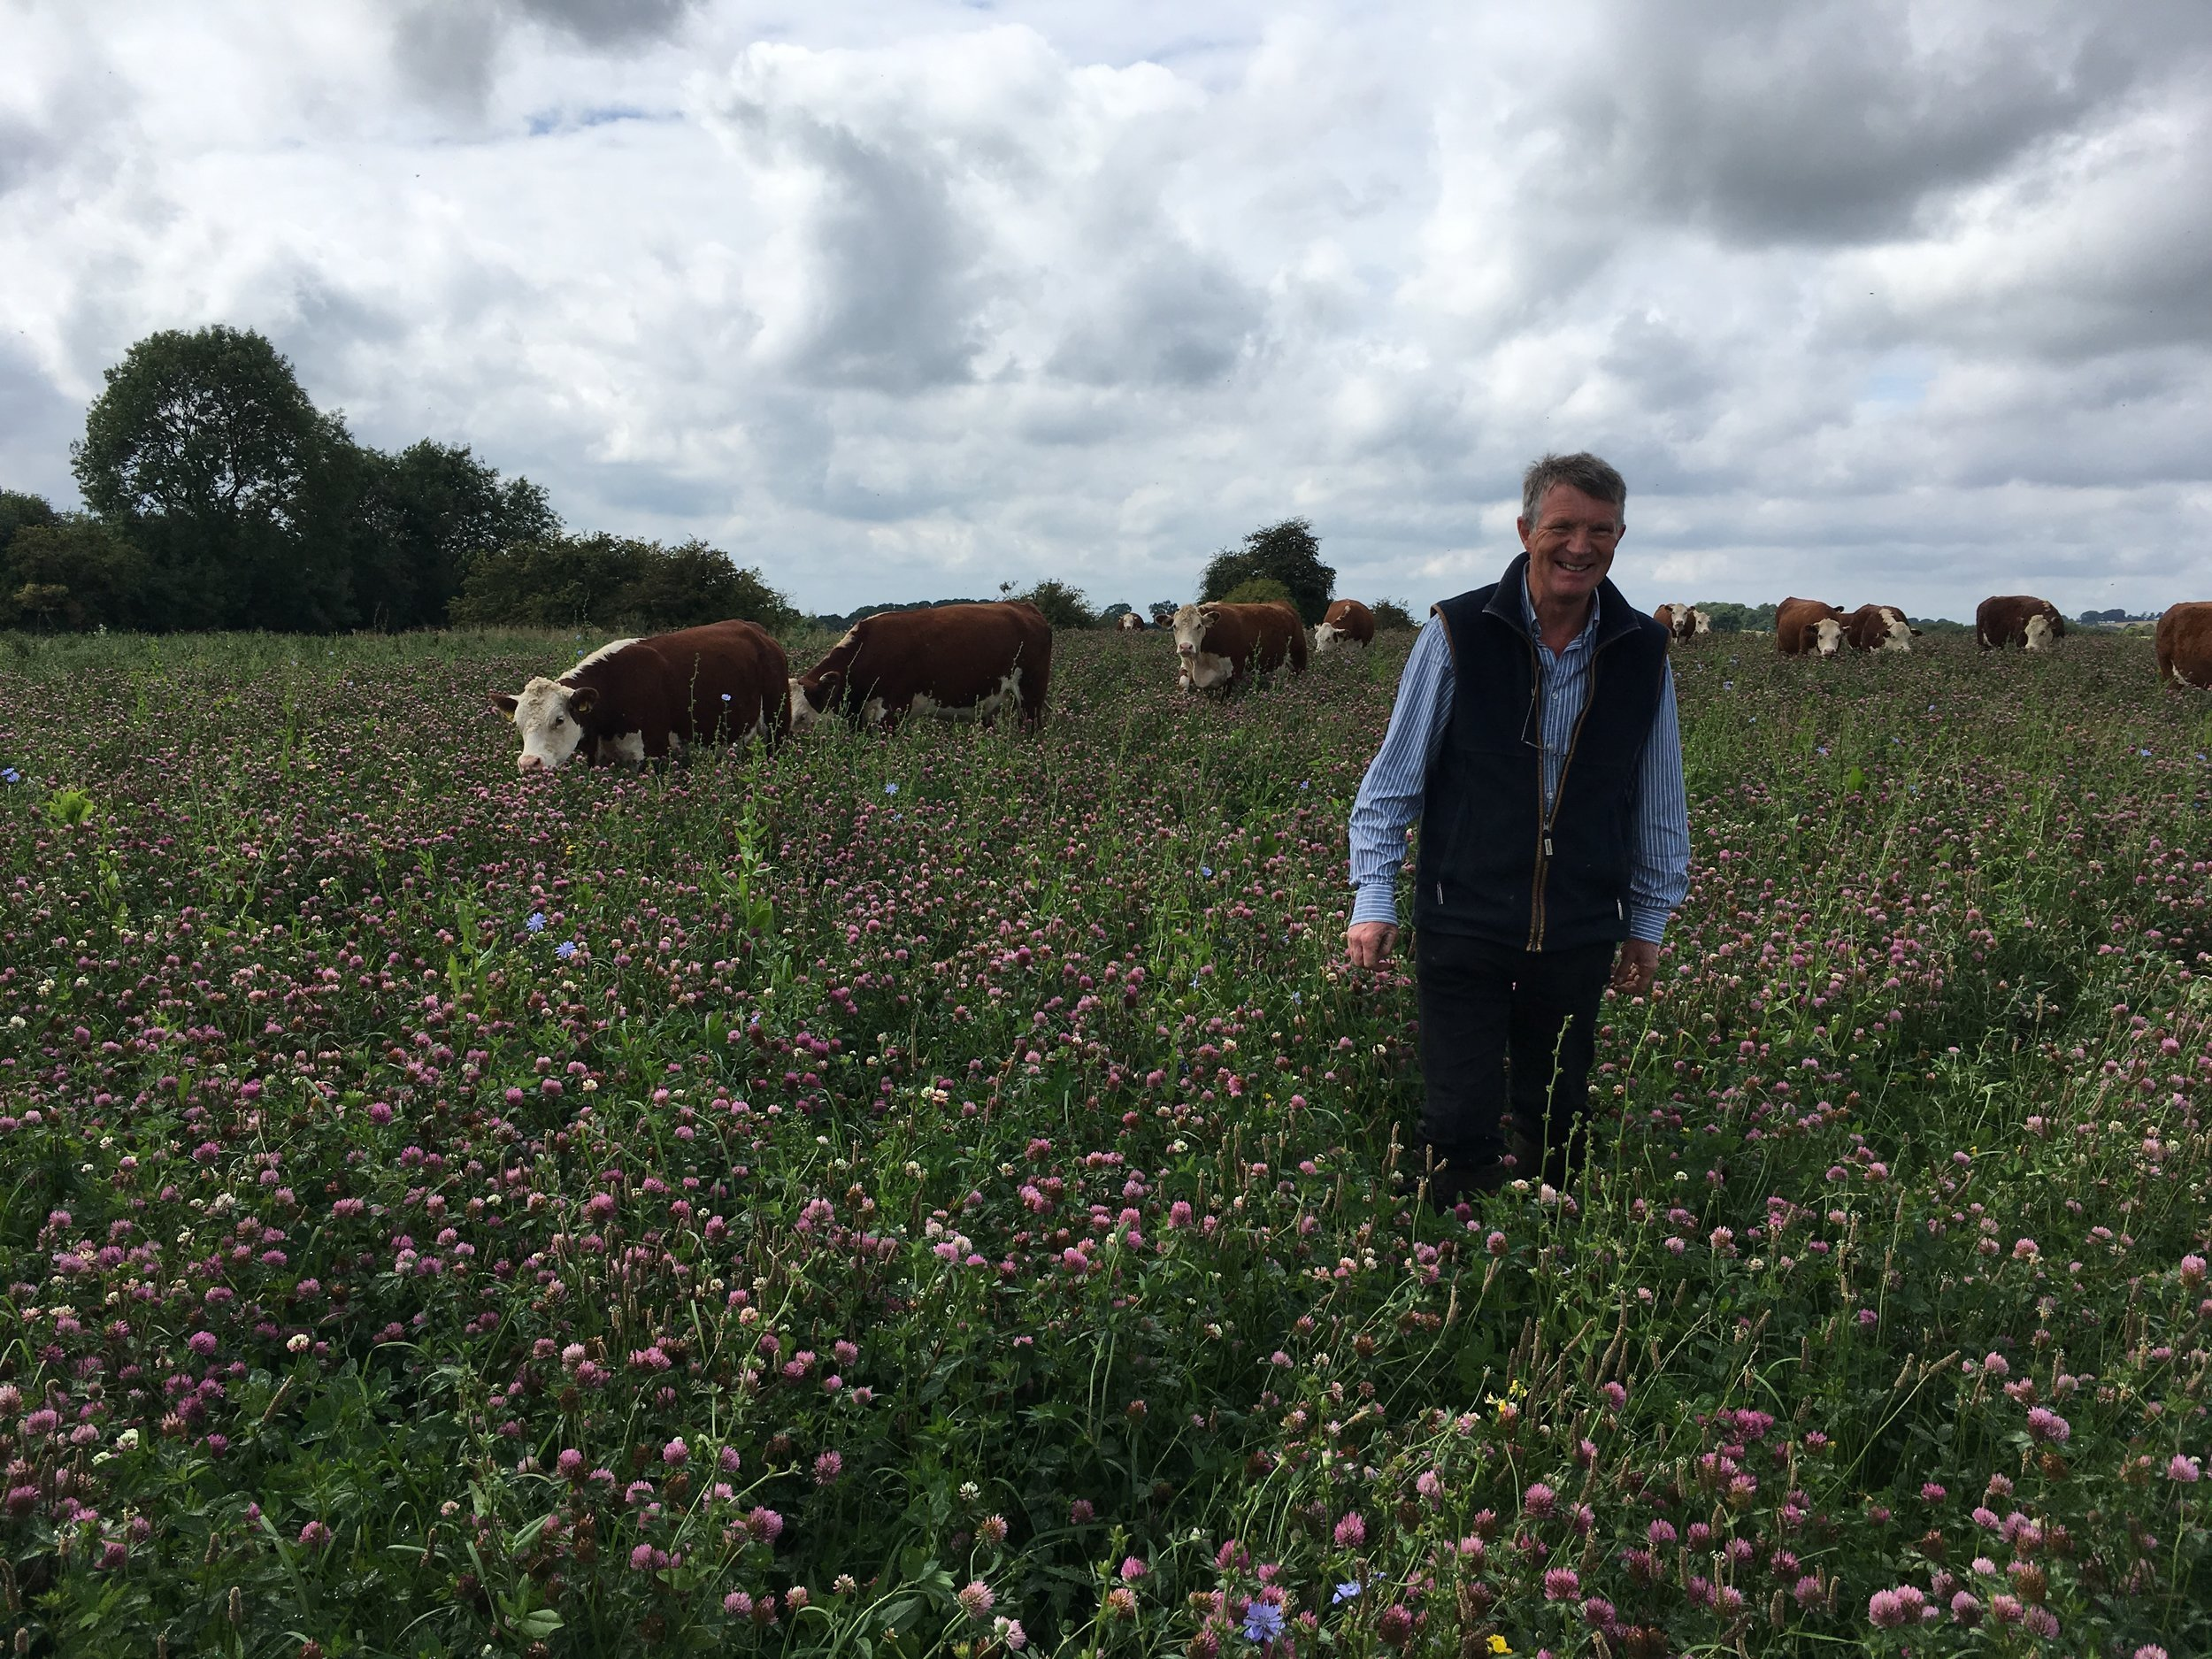 A cheery Ian Boyd with his cows in a field of clover and wild-flowers knee high. The whole farm is covered in wildflowers!